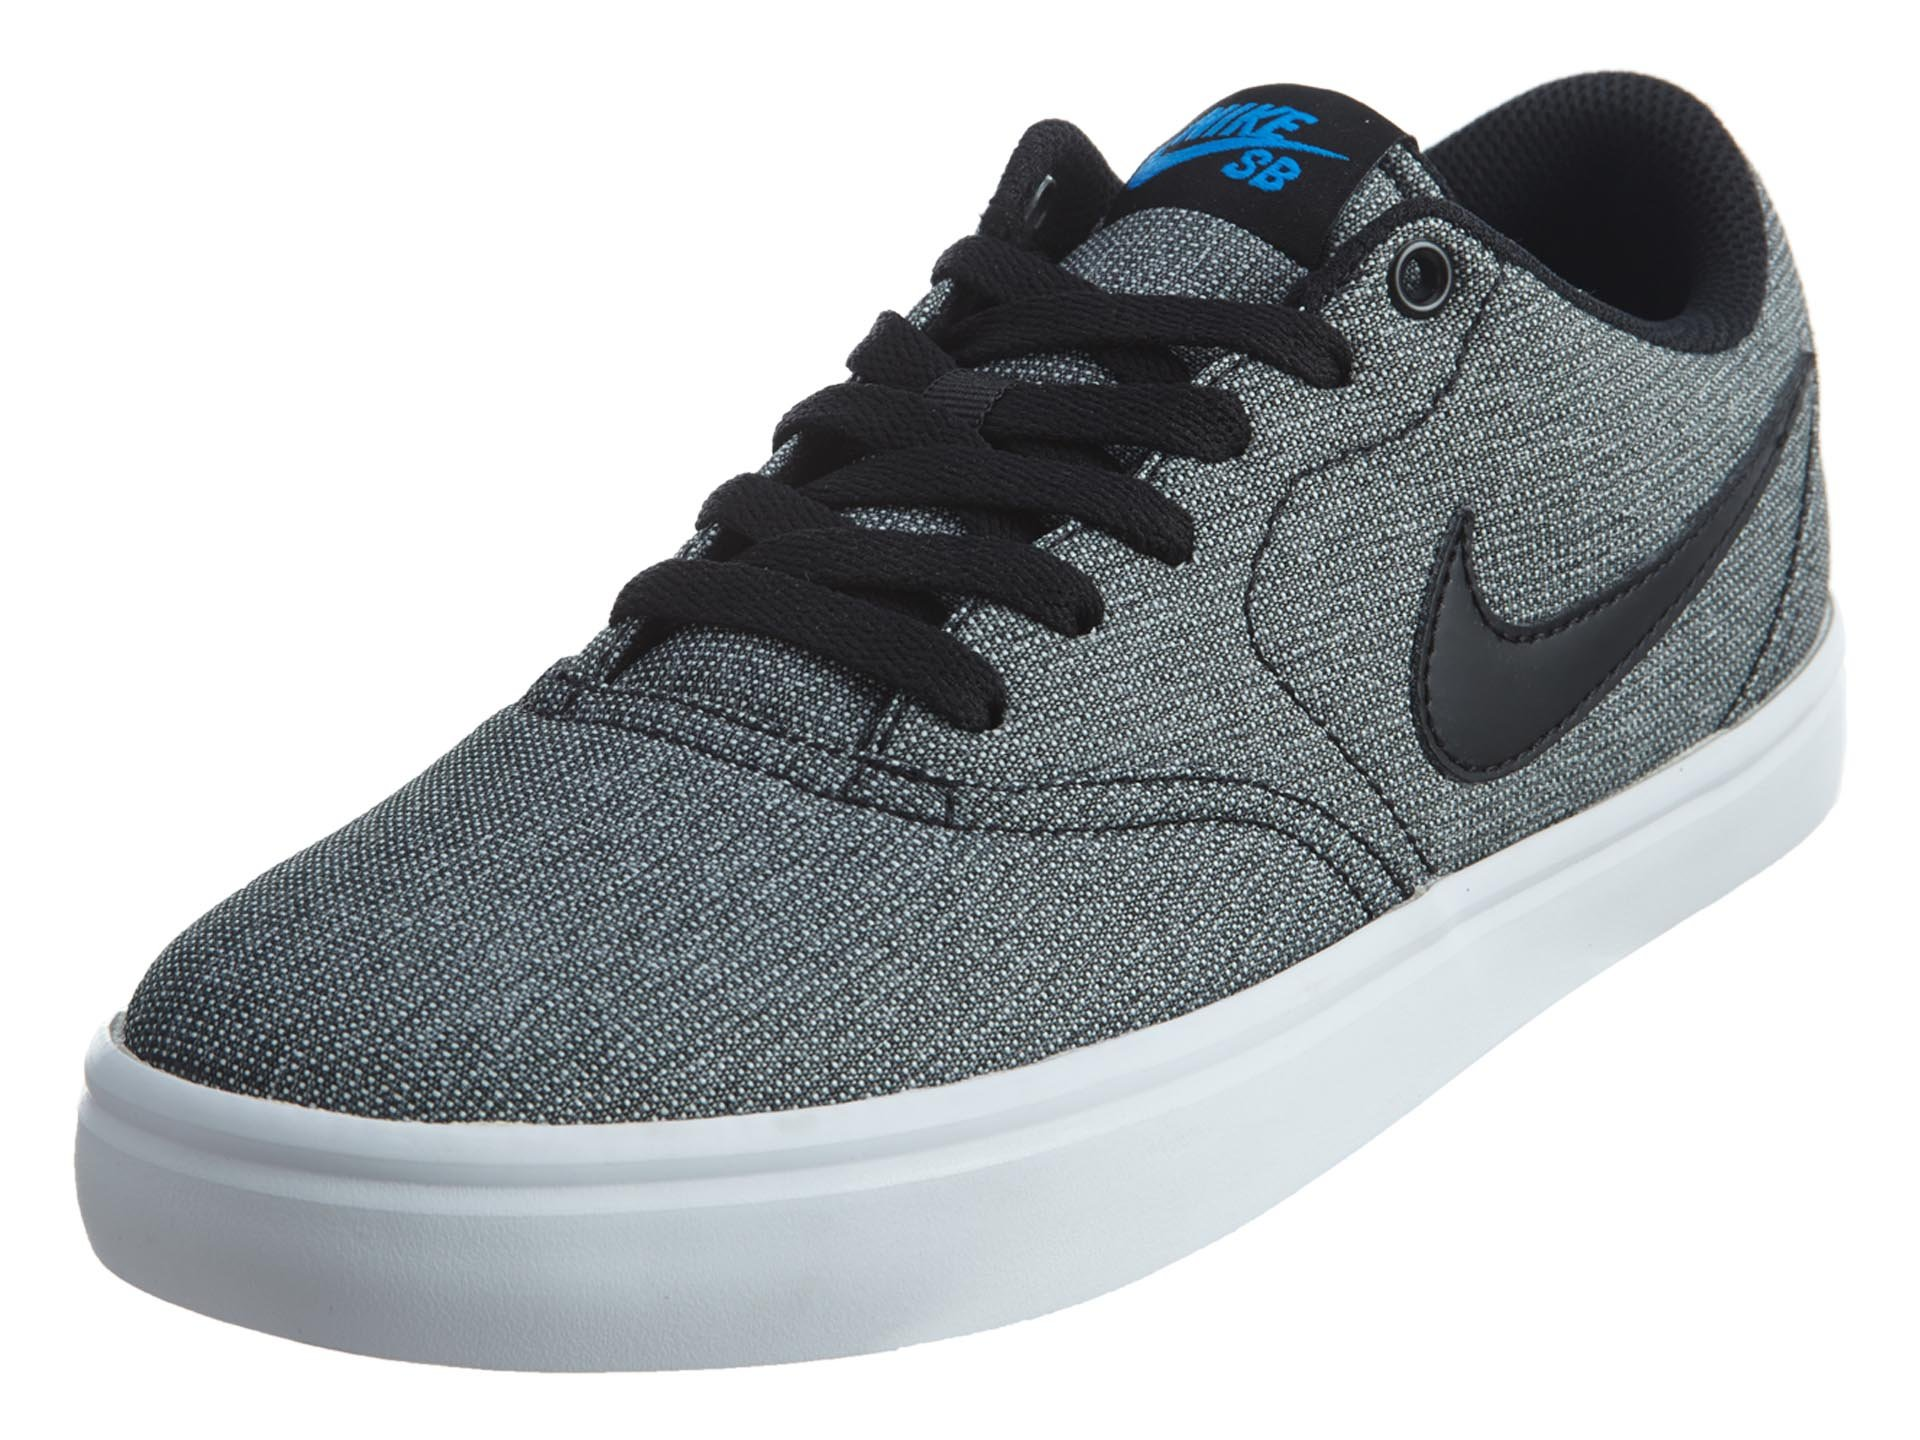 ab3b50c9470 Galleon - Nike Men s Sb Check Black   - White Photo Blue Ankle-High Suede  Skateboarding Shoe 12M